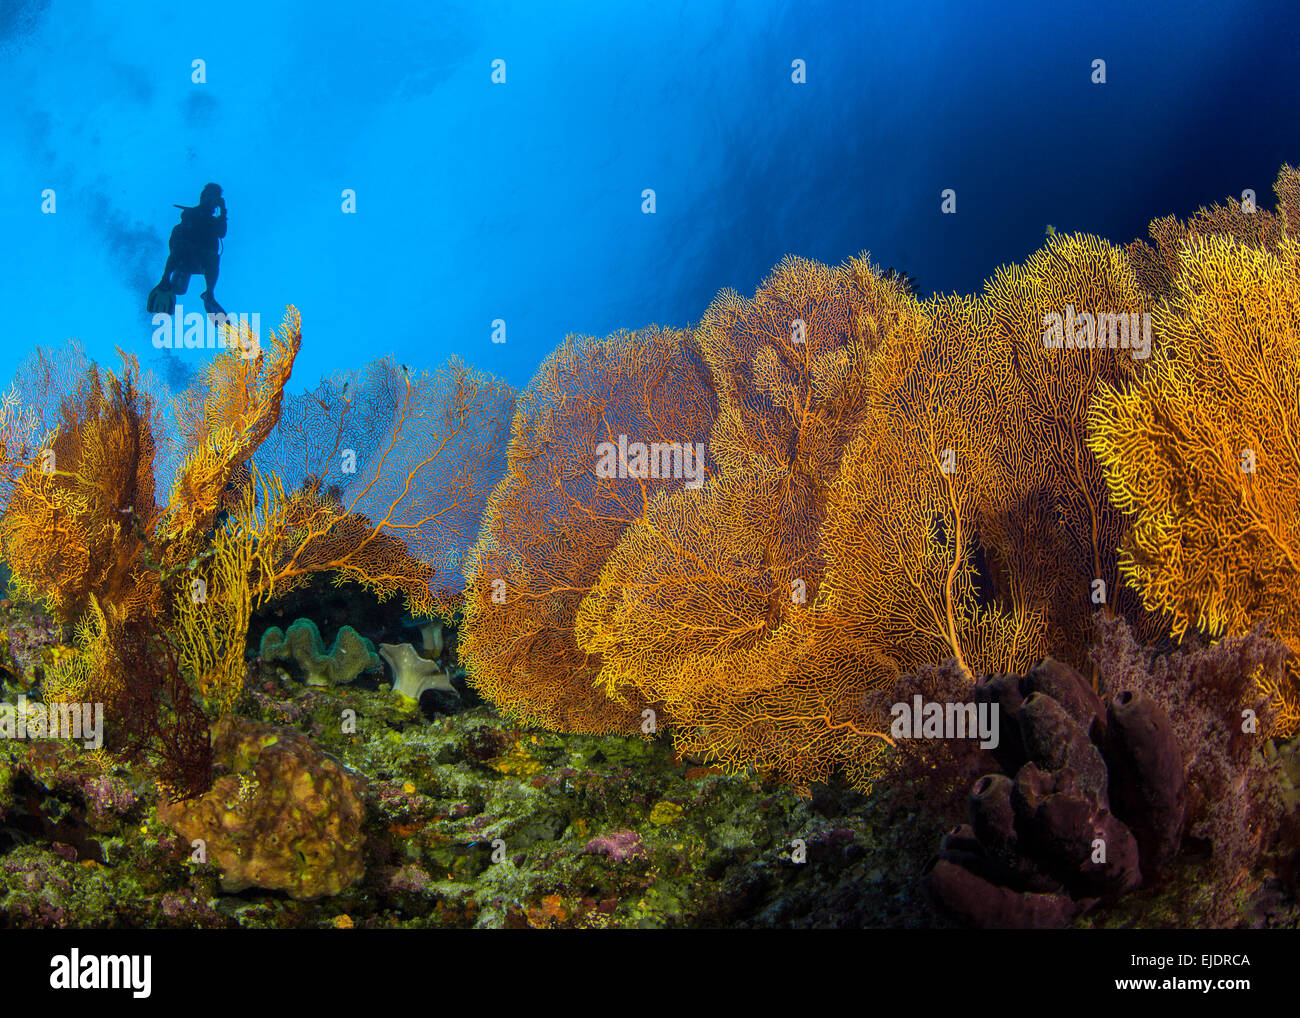 Scuba diver in silhouette ascends over colony of large golden sea fans. Spratly Islands, South China Sea. - Stock Image